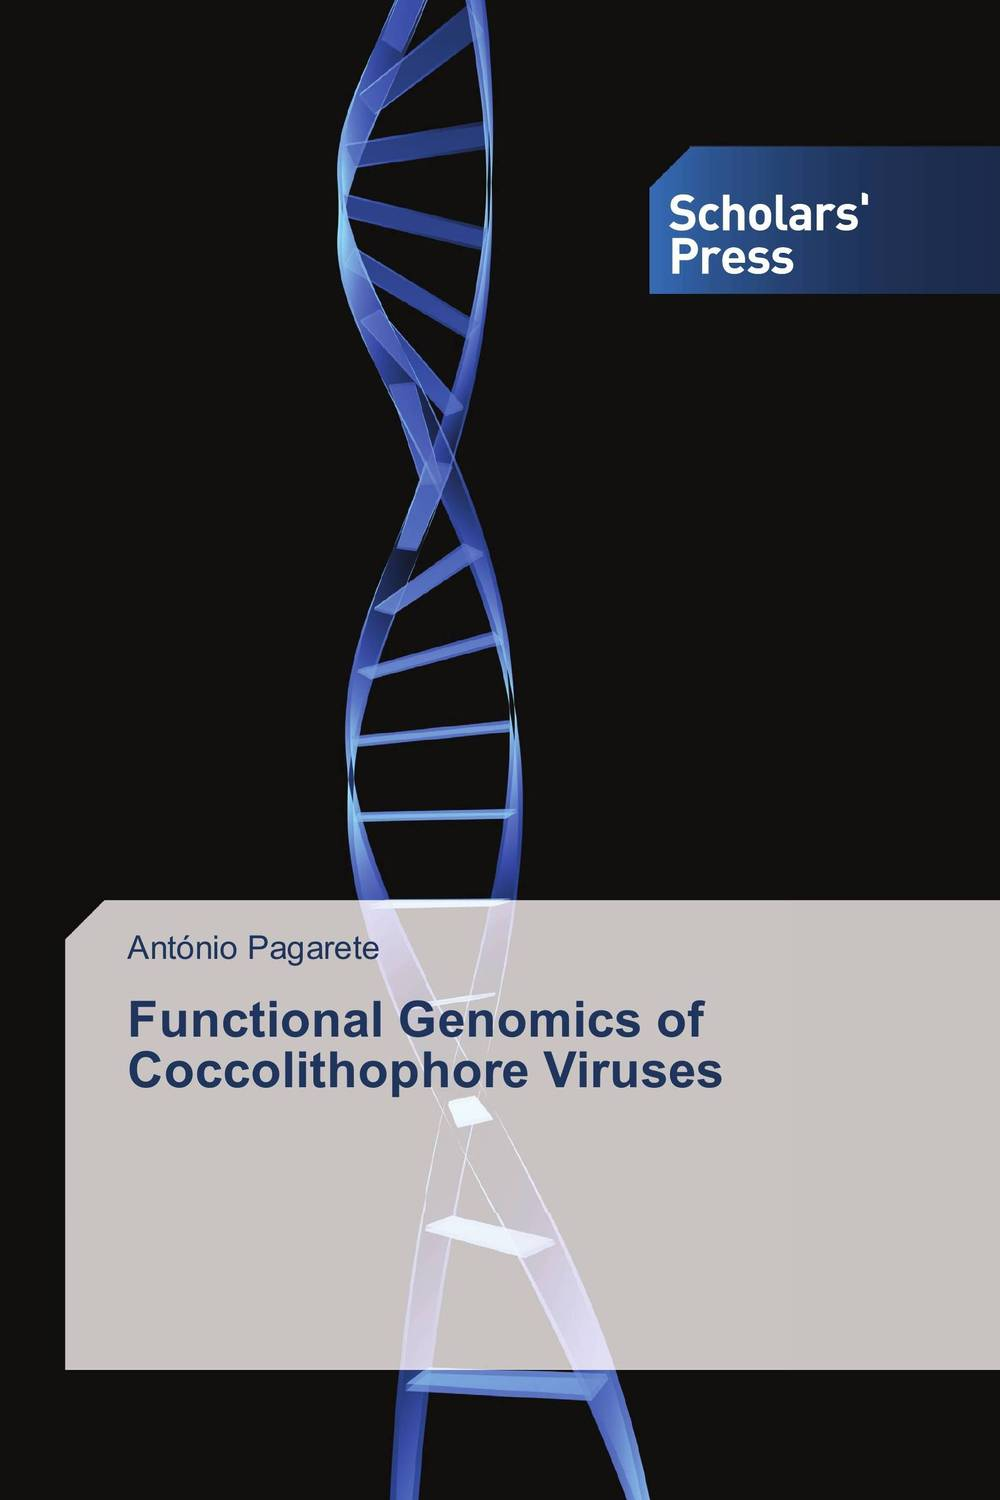 Functional Genomics of Coccolithophore Viruses viruses cell transformation and cancer 5